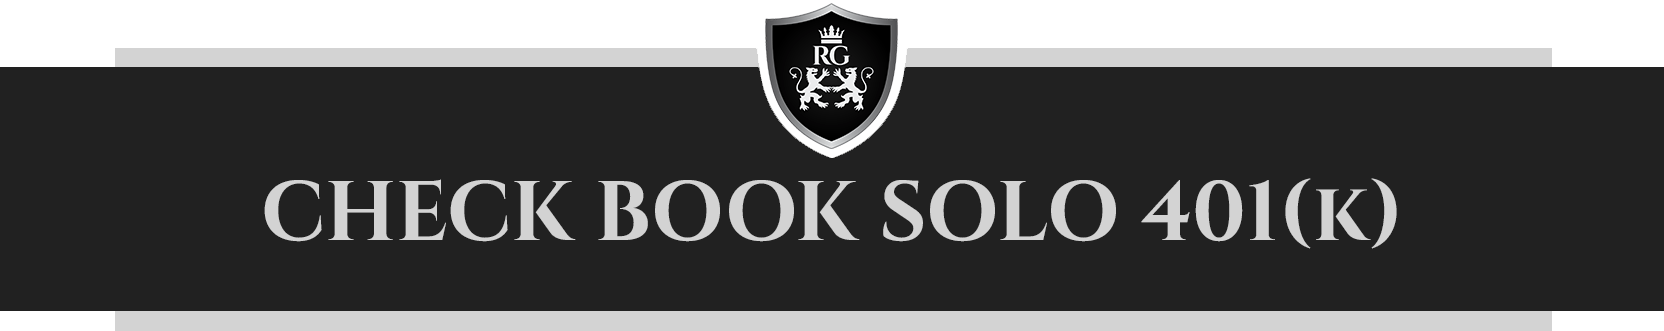 Check Book Solo 401 (K)